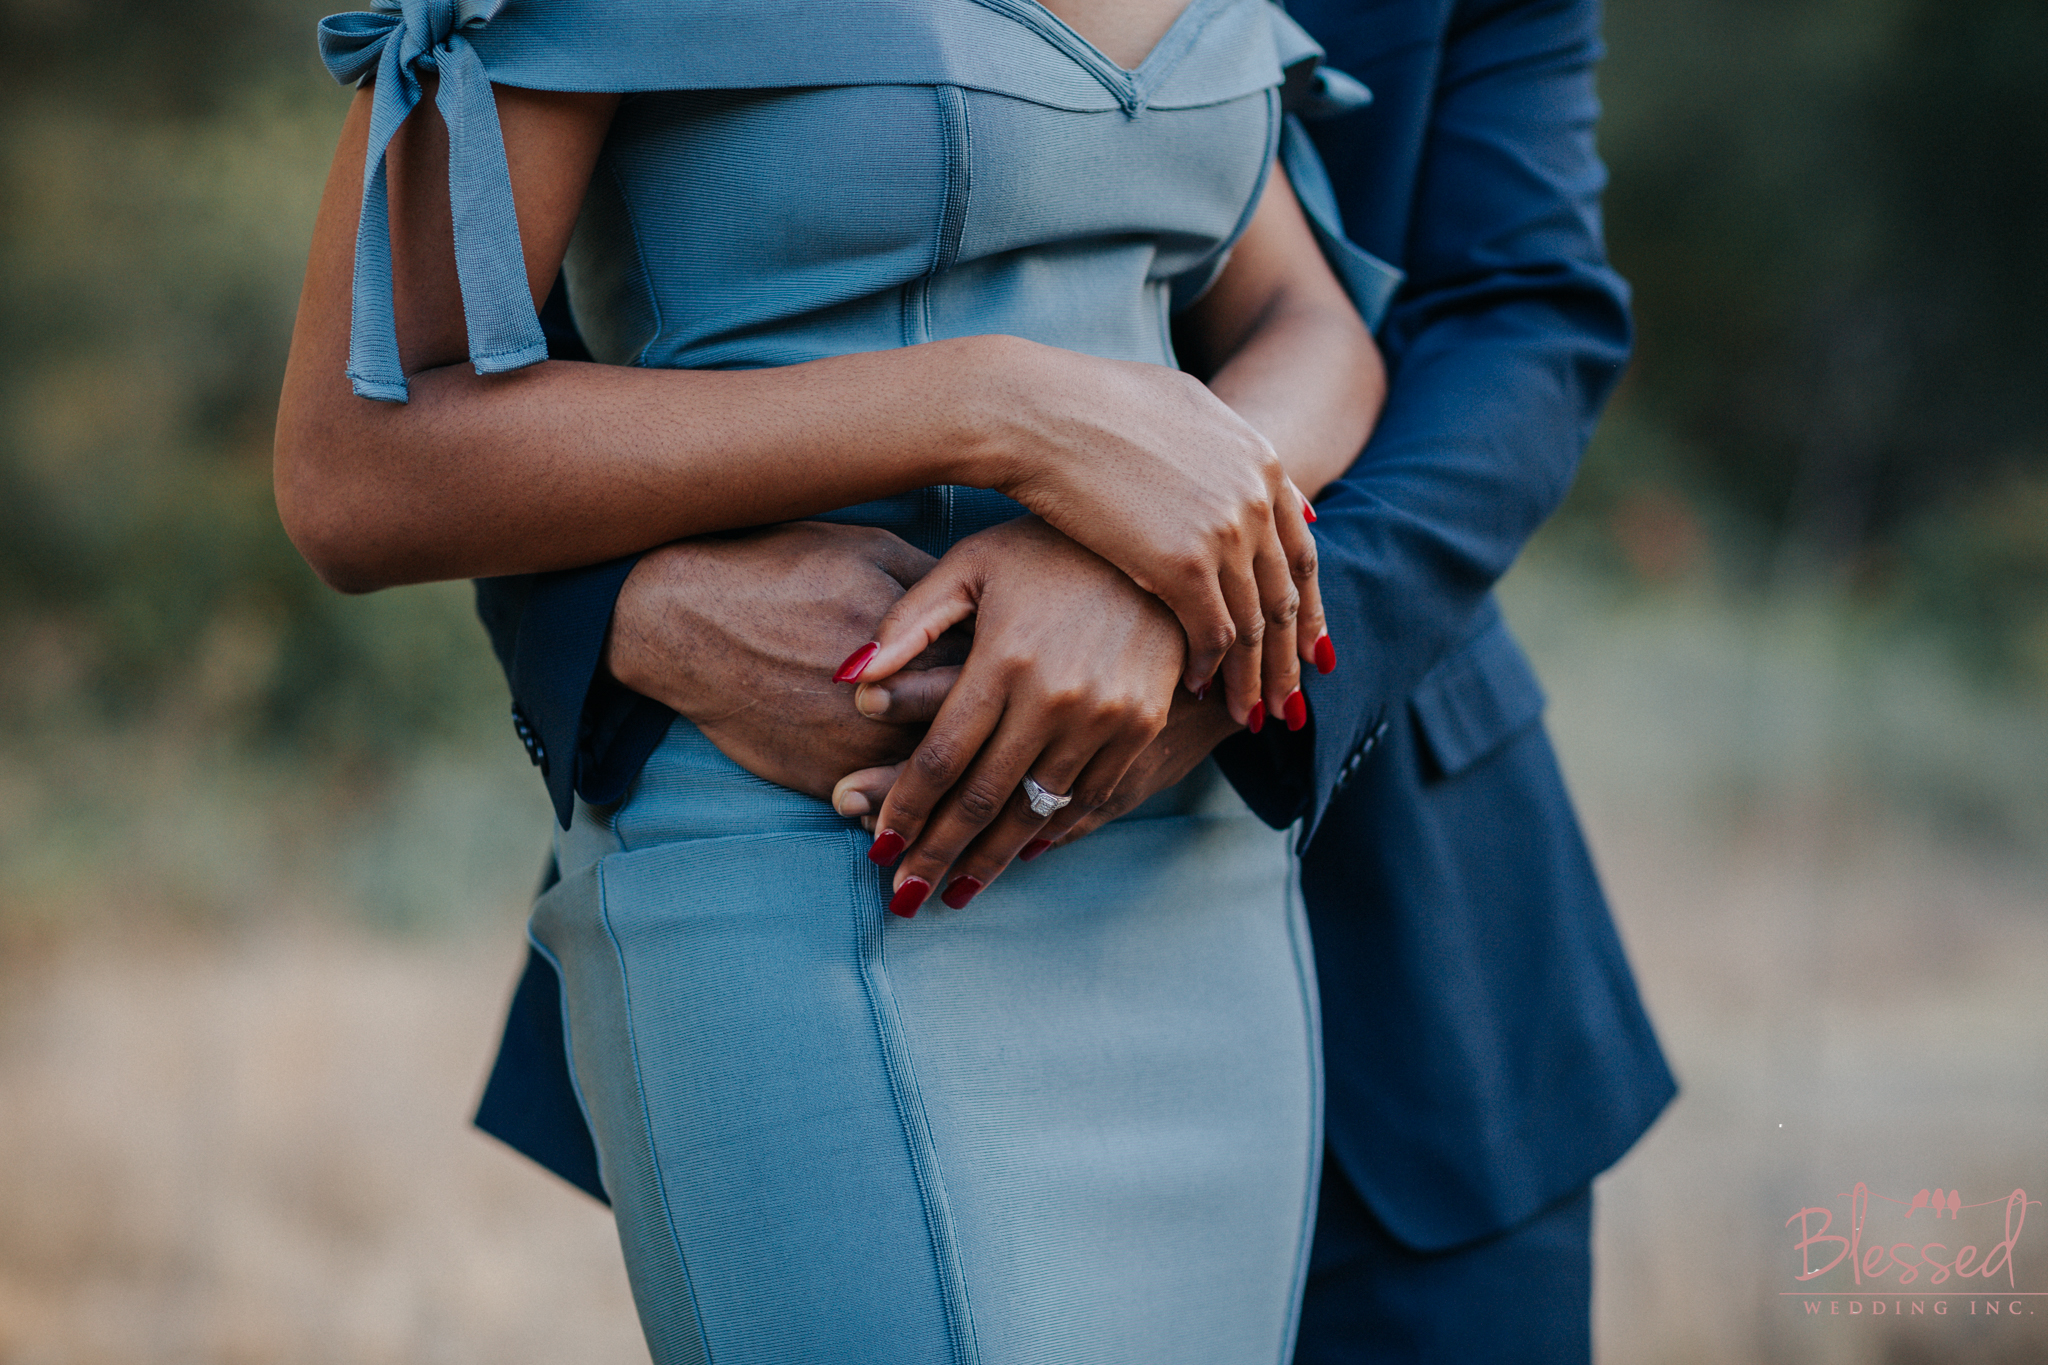 Marian Bear Park Engagement Session by Blessed Wedding Photography  (9 of 25).jpg